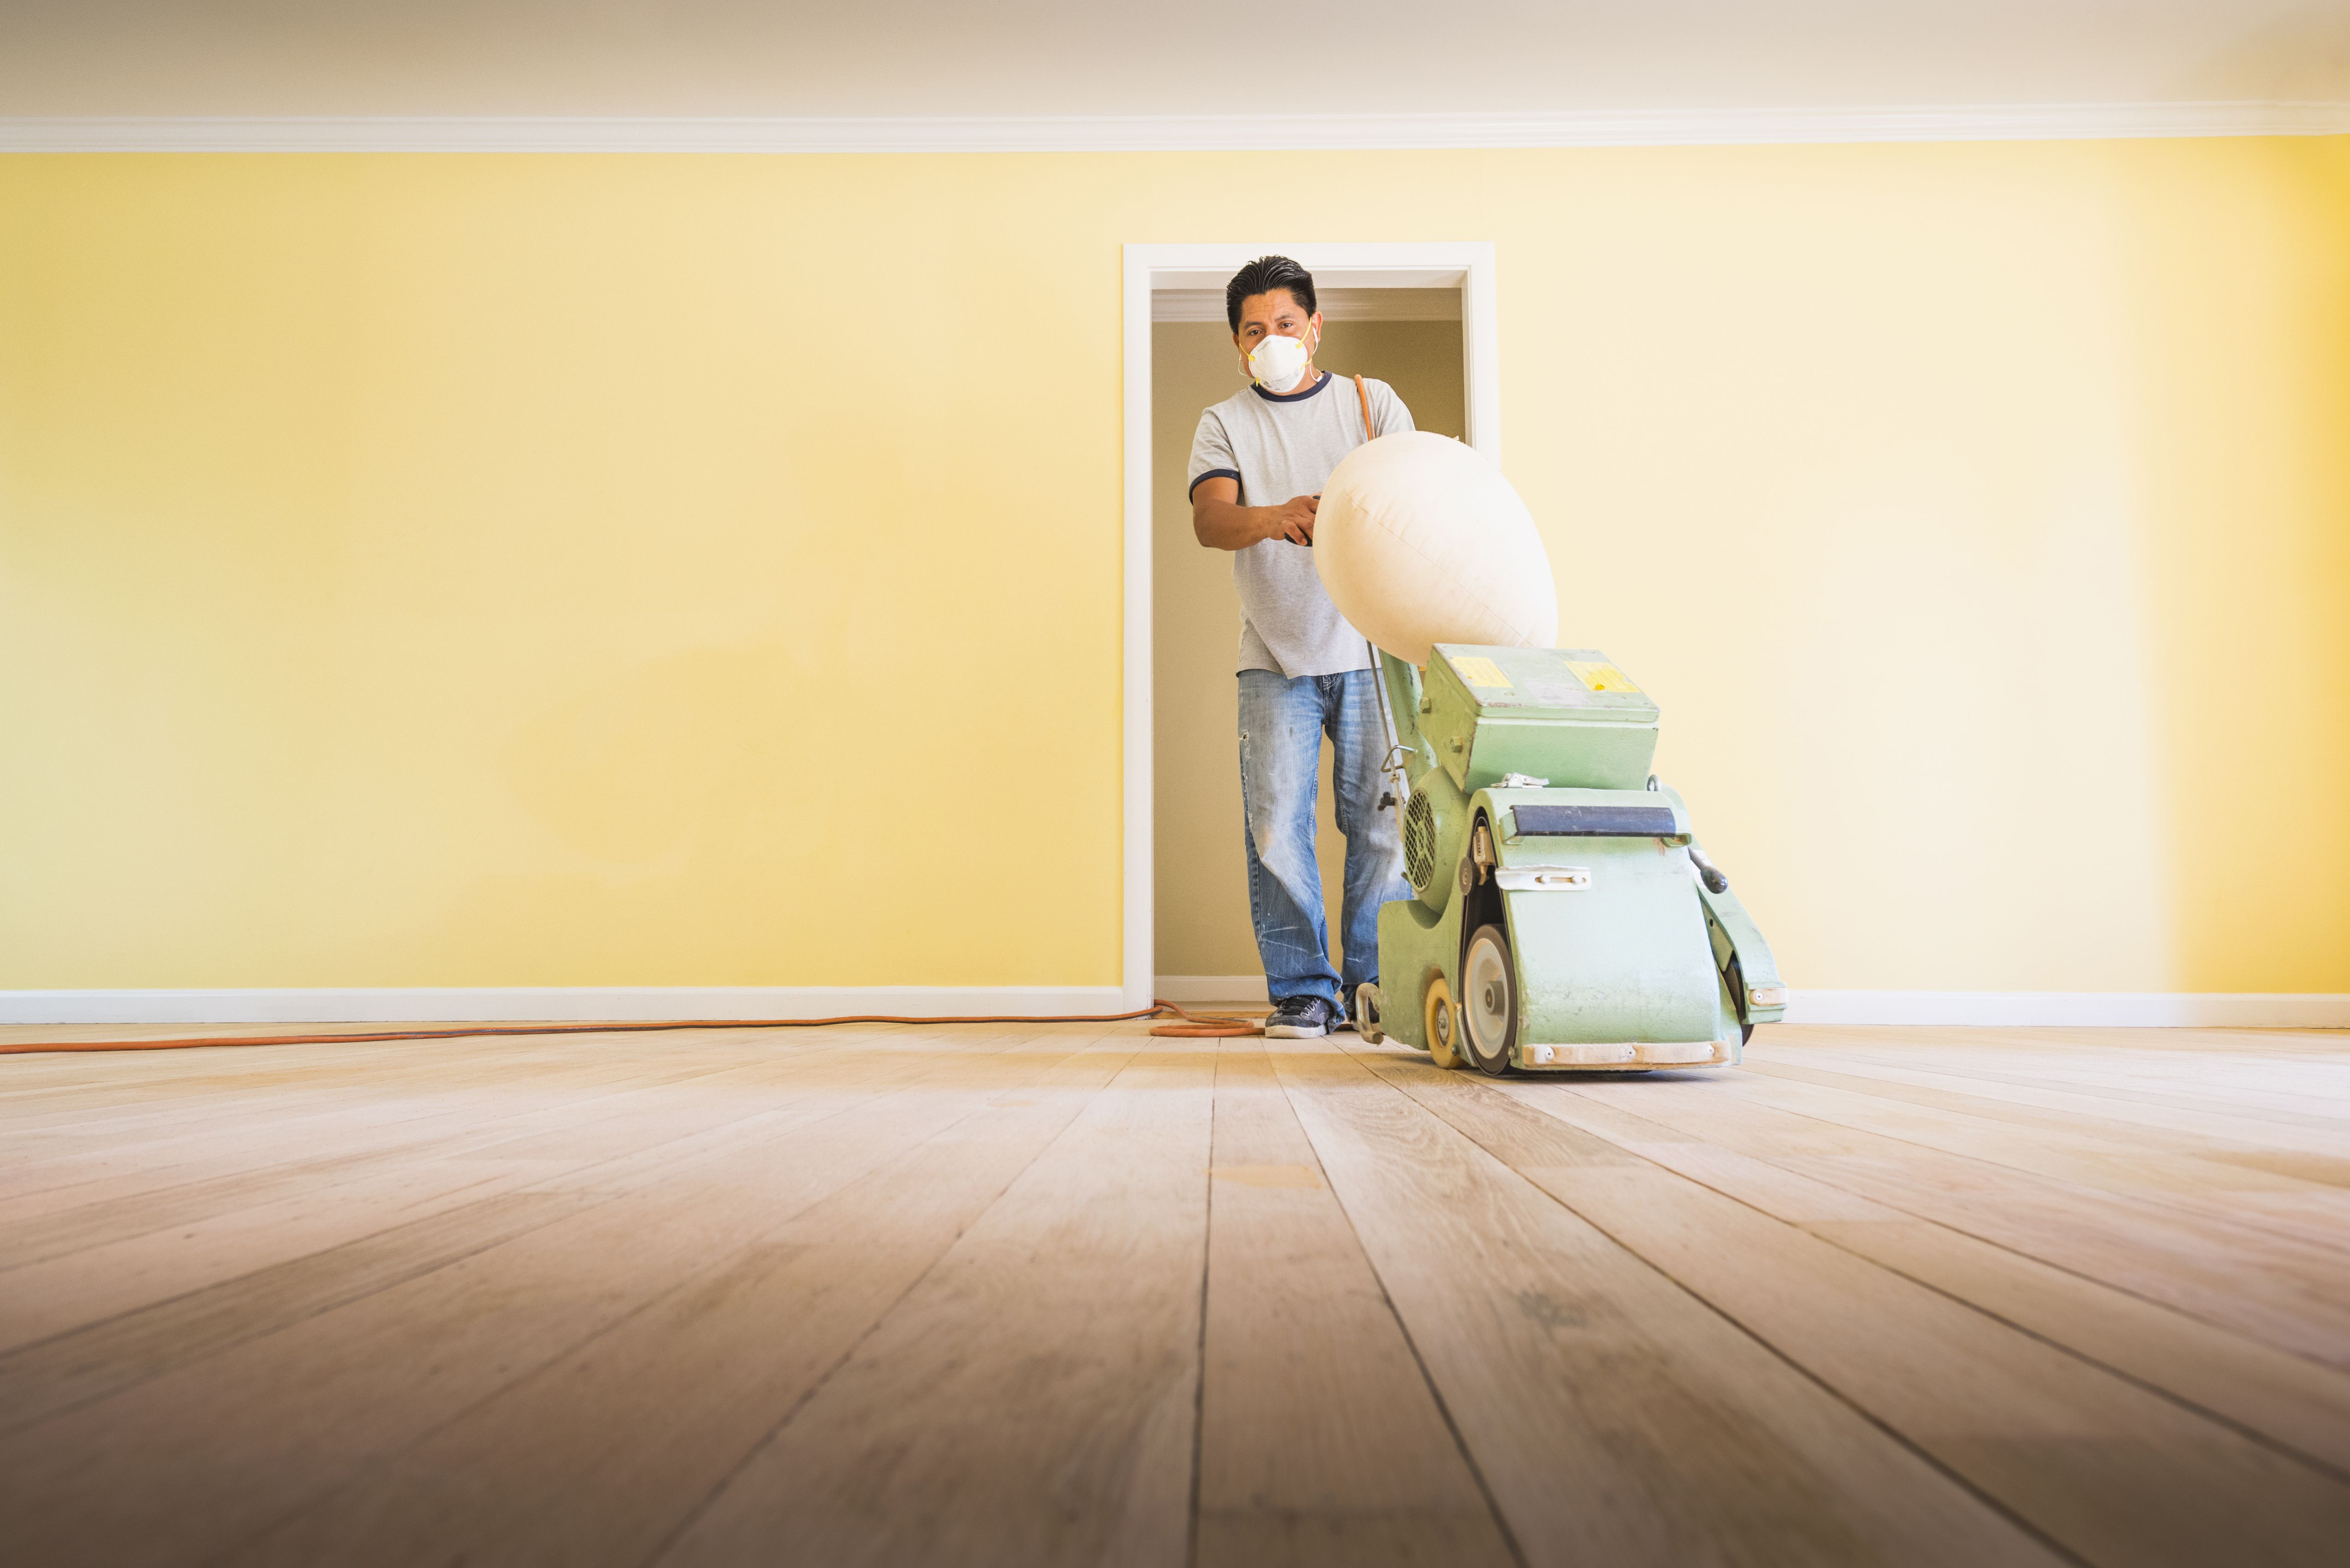 hardwood floor refinishing albuquerque of should you paint walls or refinish floors first intended for floorsandingafterpainting 5a8f08dfae9ab80037d9d878